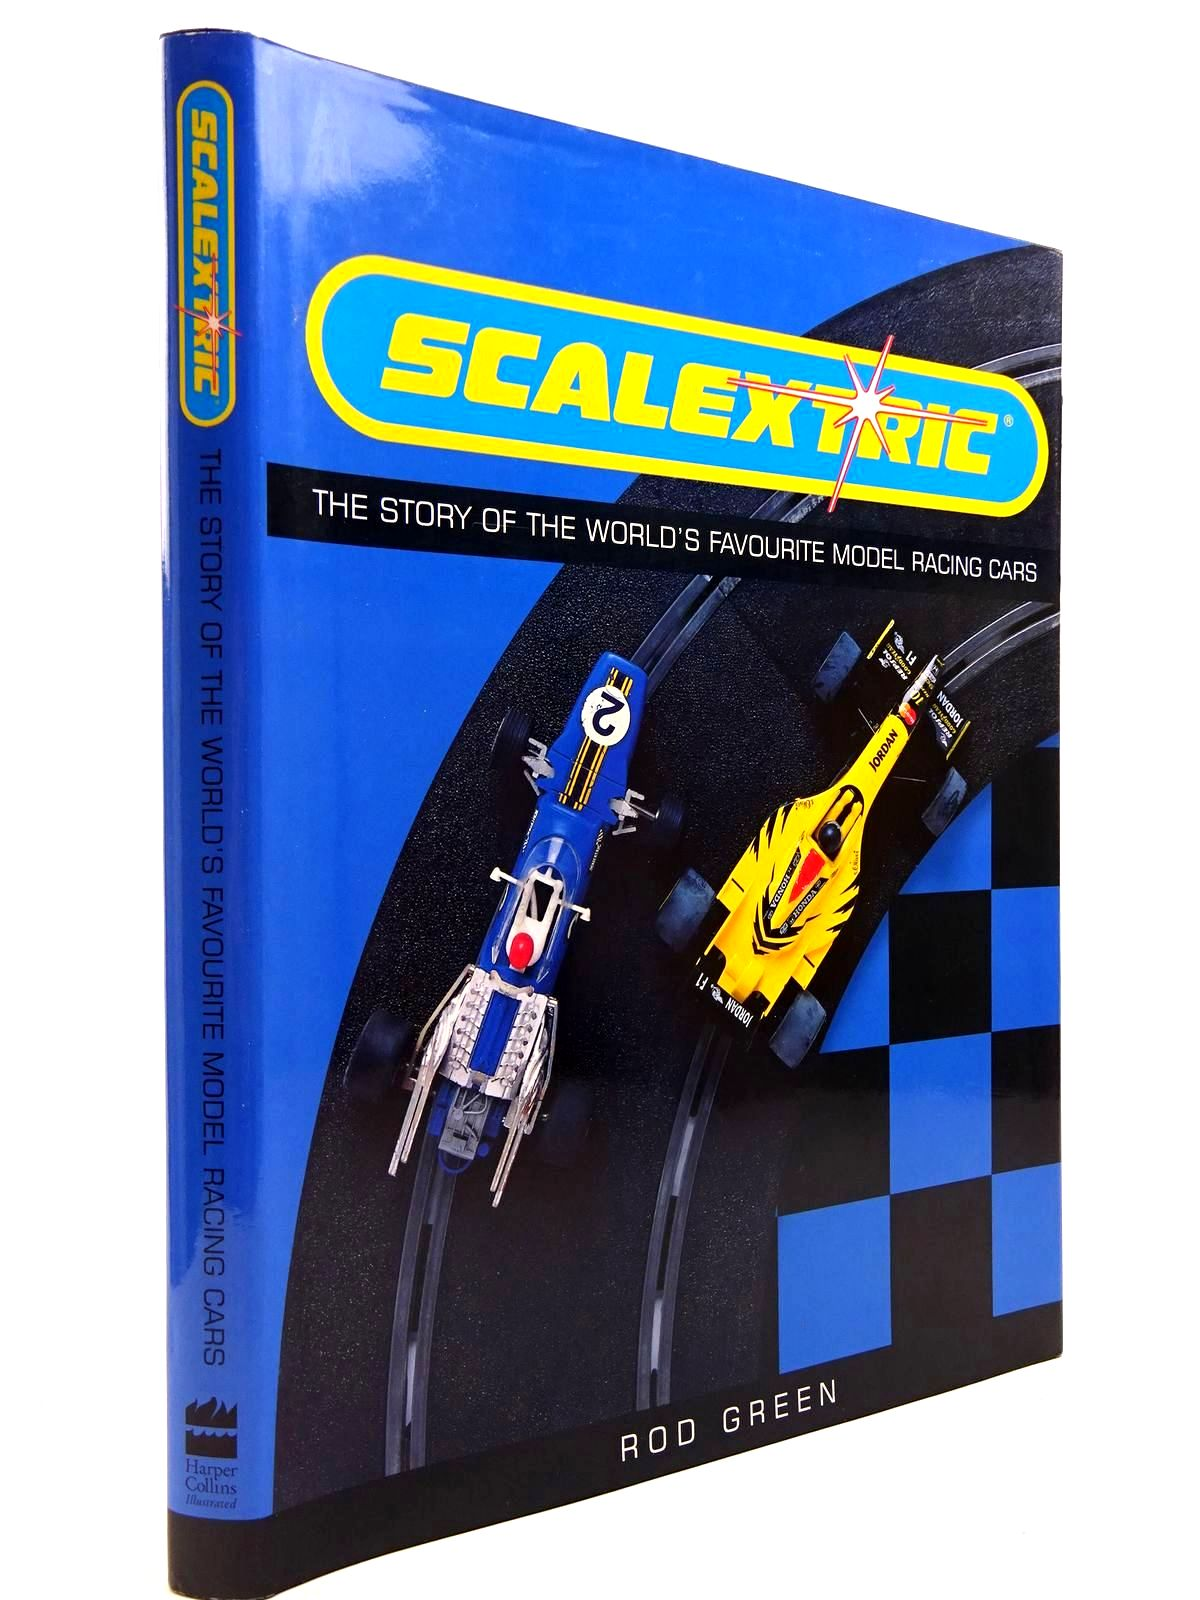 Photo of SCALEXTRIC THE STORY OF THE WORLD'S FAVOURITE MODEL RACING CARS written by Green, Rod published by Harper Collins (STOCK CODE: 2130725)  for sale by Stella & Rose's Books